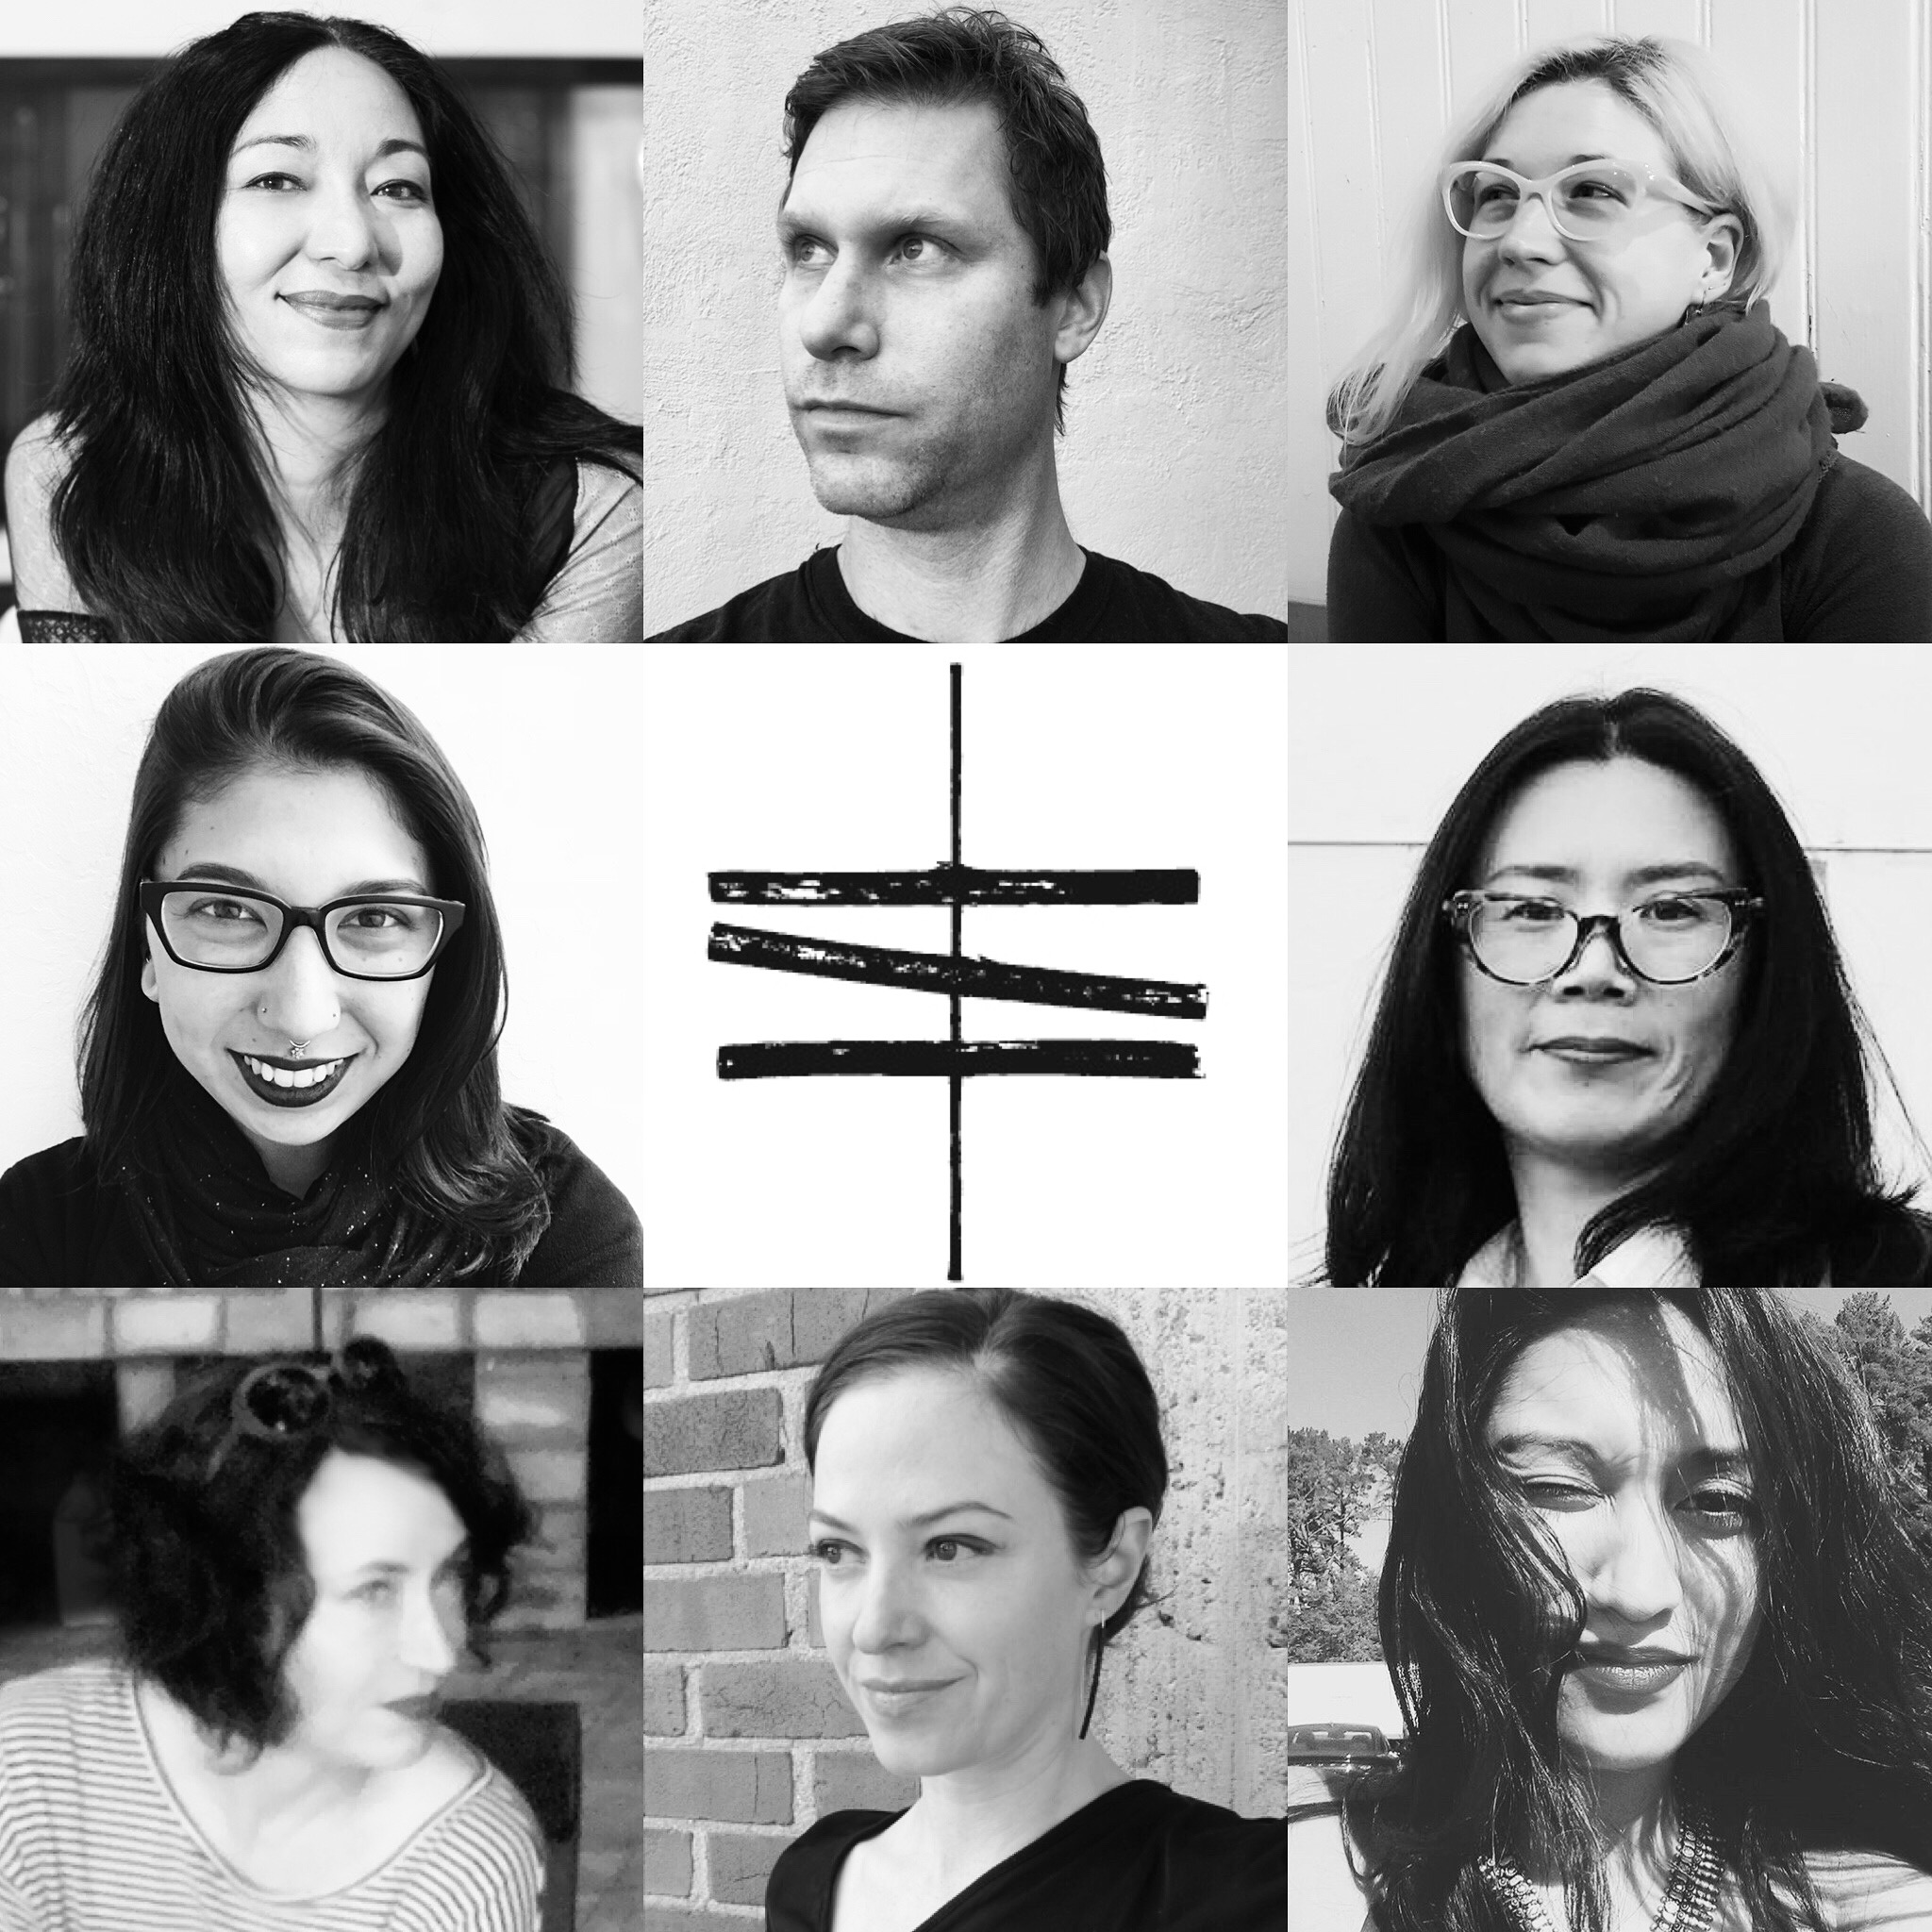 April Higashi.    Owner; gallerist, designer, maker, boss lady, Shibumi: 2005.   Ben Faryna.  Lead Goldsmith; maker, mindreader, deep thinker, aesthetic perfecter, 2011.   Kate Eickelberg.  Gallery Assistant; costing + custom go-to, maker, observer, grammar enthusiast, 2012.   Aya Osada.  Bookkeeper; life straightener, maker of patterns, parrot owner, 2015.   Nina Bocobo.  Assistant Goldsmith; deep learner, on-call staff model, snack coordinator, maker, organic object collector, 2017.   Claudia Alleyne.  Gallery Manager; right hand gal, assists in everything, custom design, maker, lover of African anything, 2016.   Karen Lee.   Identity Builder; fact checker, editor, designer, gardener extraordinaire, 2004.    Trevi Pendro.  Gallery Assistant; fellow happa, newest addition in the gallery, social media coordinator, staff photographer, maker, tattoo addict, 2017.